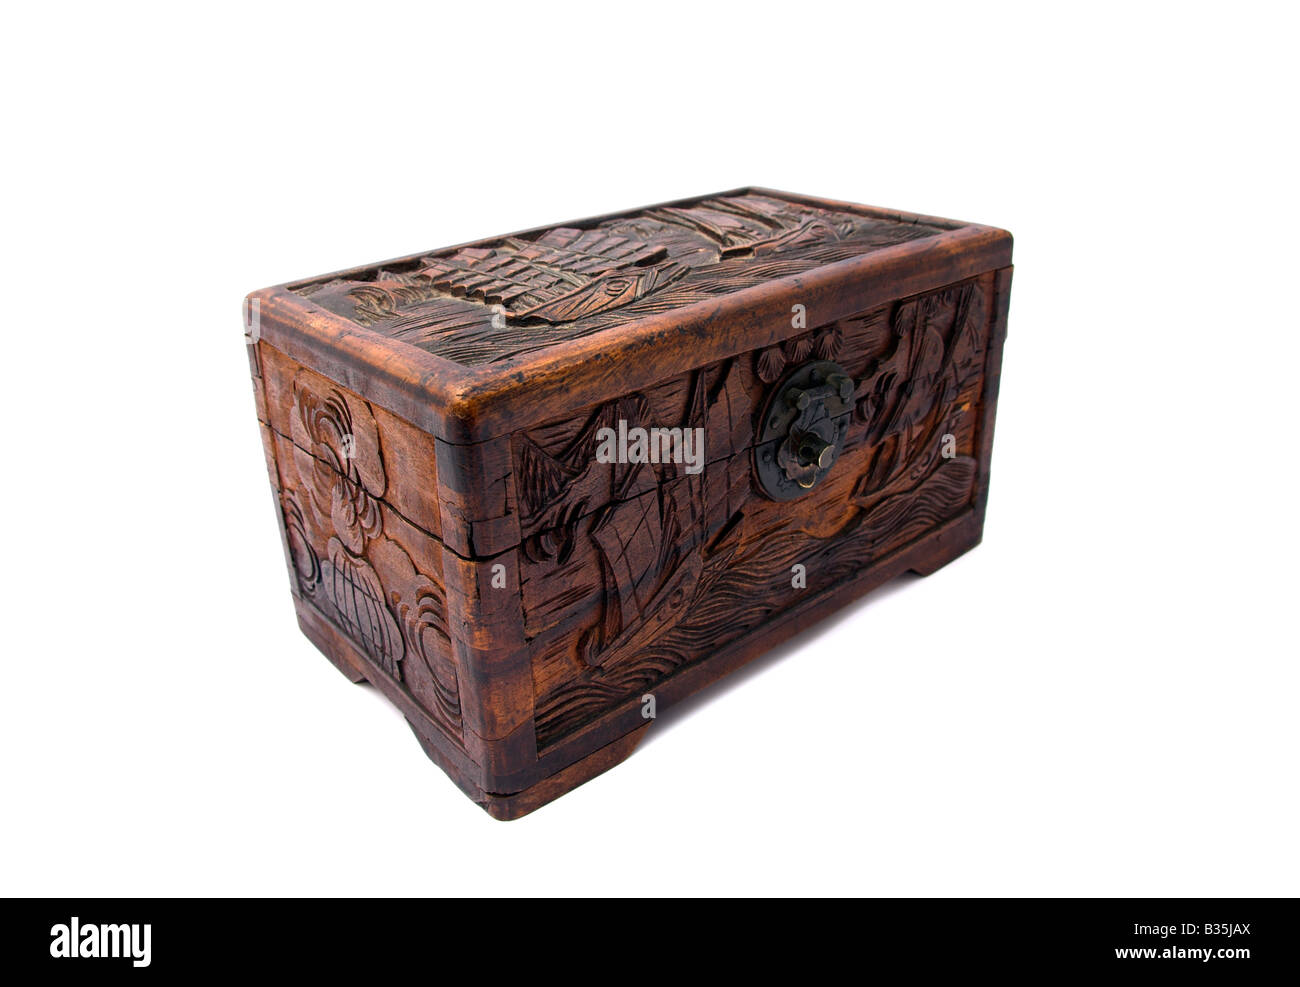 box cnc laser boxes files and ornaments file wooden gap with download for free machine plan dxf decor decorative